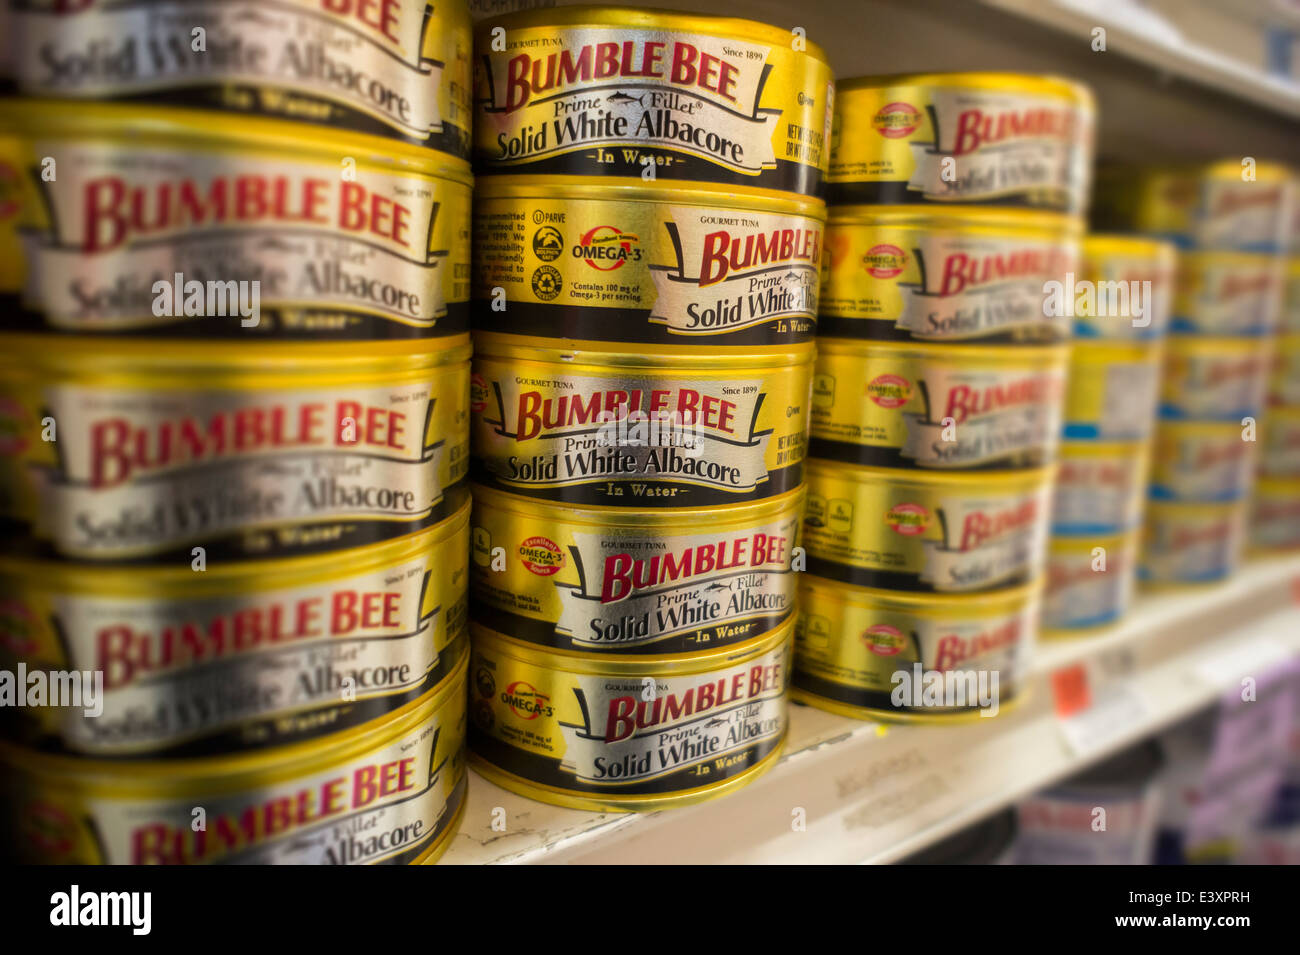 White Albacore | Cans Of Bumble Bee Solid White Albacore Tuna On A Grocery Store